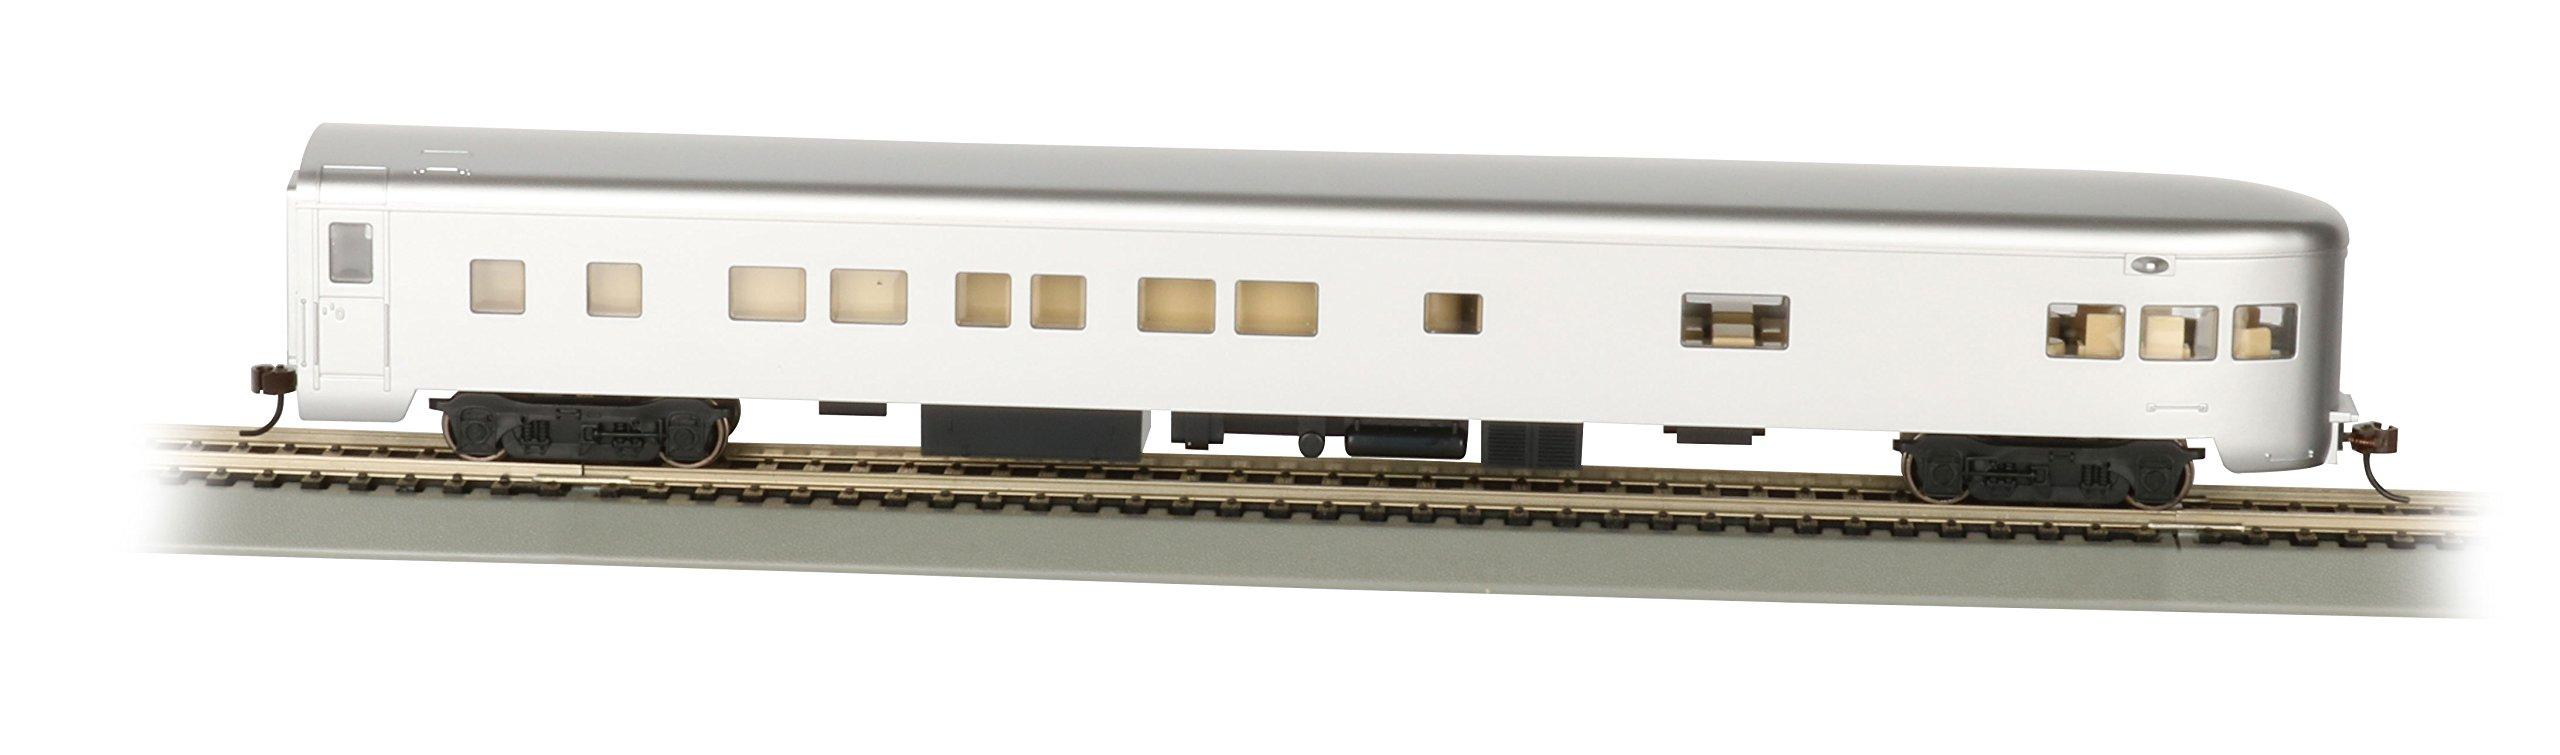 Bachmann Industries Painted Unlettered Aluminum Smooth-Side Observation Car with Lighted Interior (HO Scale), 85' by Bachmann Trains (Image #1)